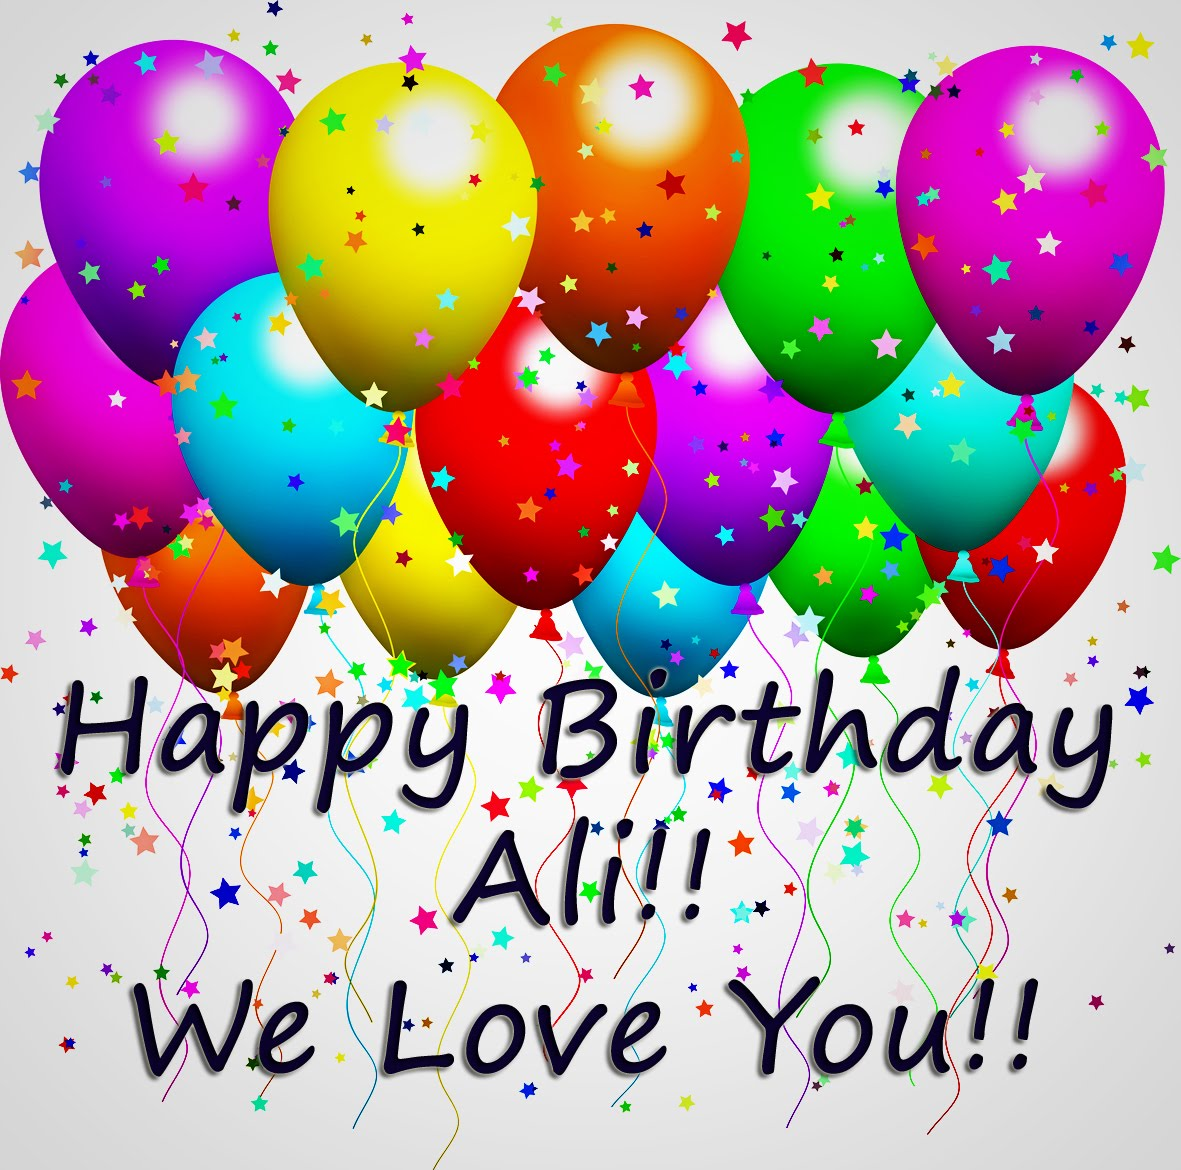 Happy Birthday Ali Cake